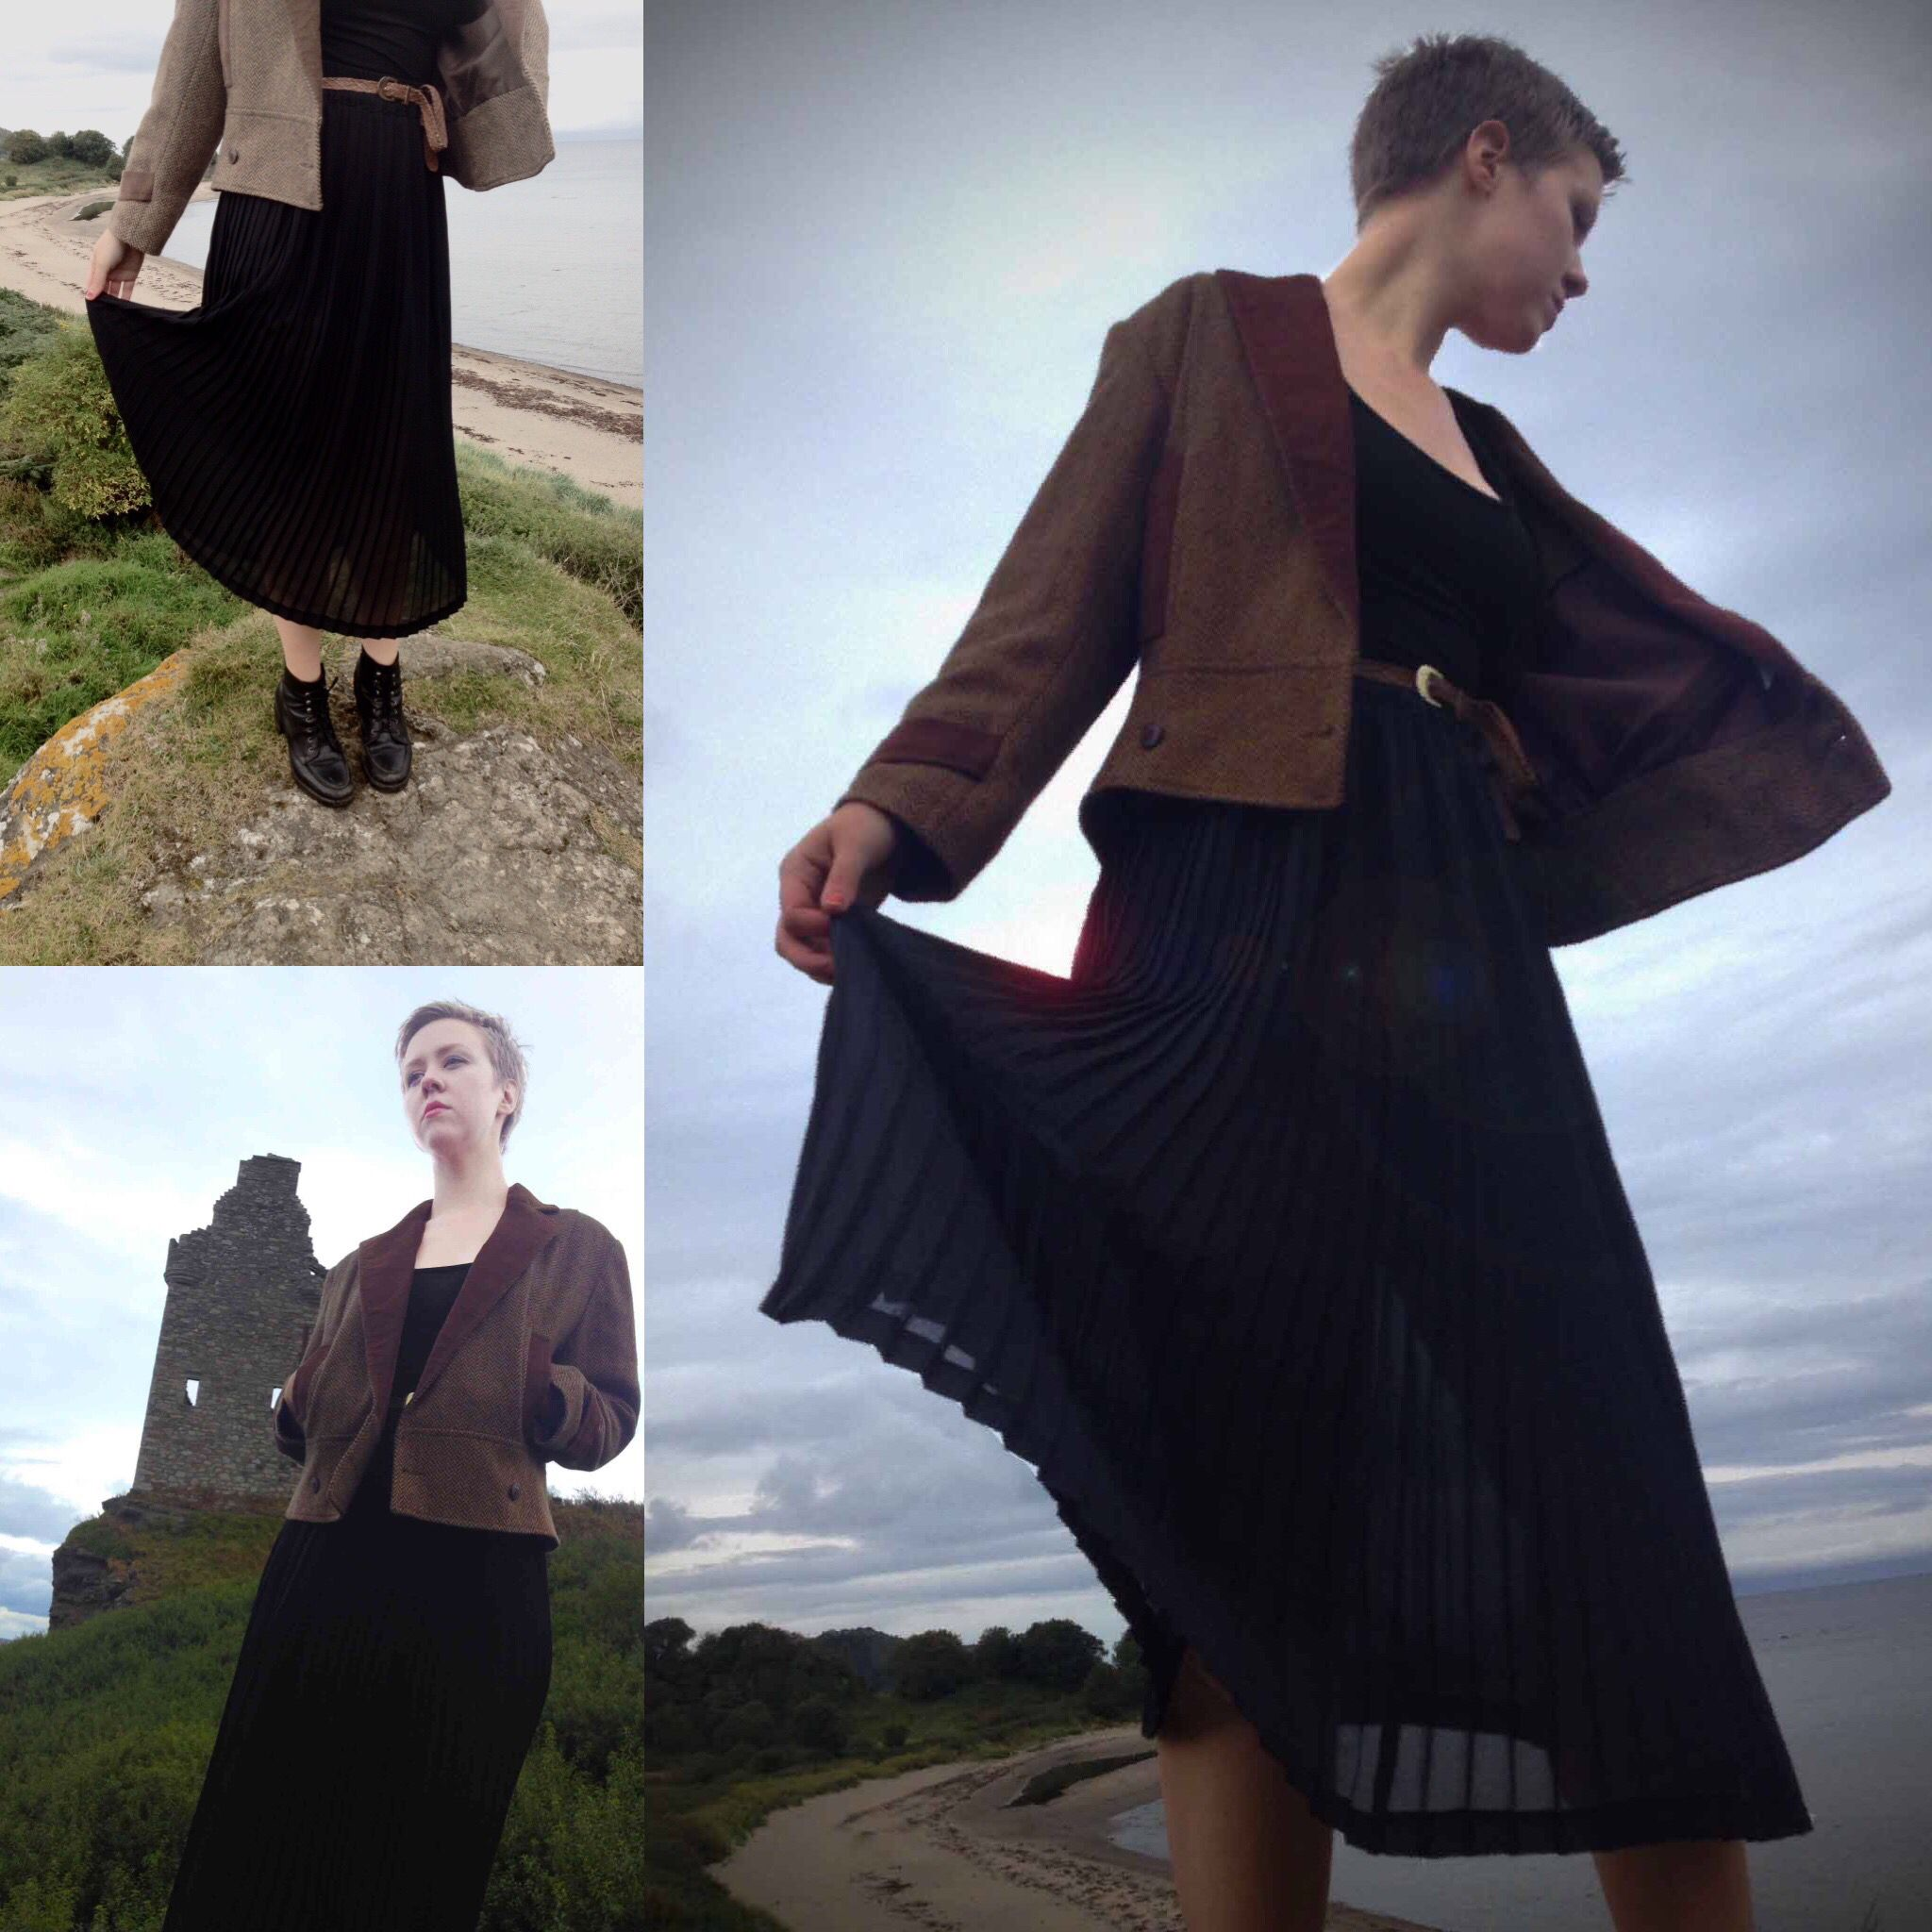 Here are some tasty pleats just for you!! Enjoy and let us know what you think!! 😀😍👌👍👏 #vintage #vintagelook #vintagelove #vintagestyle #vintagefashion #womensvintagefashion #ladiesvintage #womensfashion #vintageblogs #blogs #pleatedskirt #pleated #blackskirt #jacket #vintagejacket #vintageskirt #castleruins #seafront #vintageshop #vintagestore #likeit #morecomingsoon #earstothegroundandeyestotheskiespeople #spreadthelove